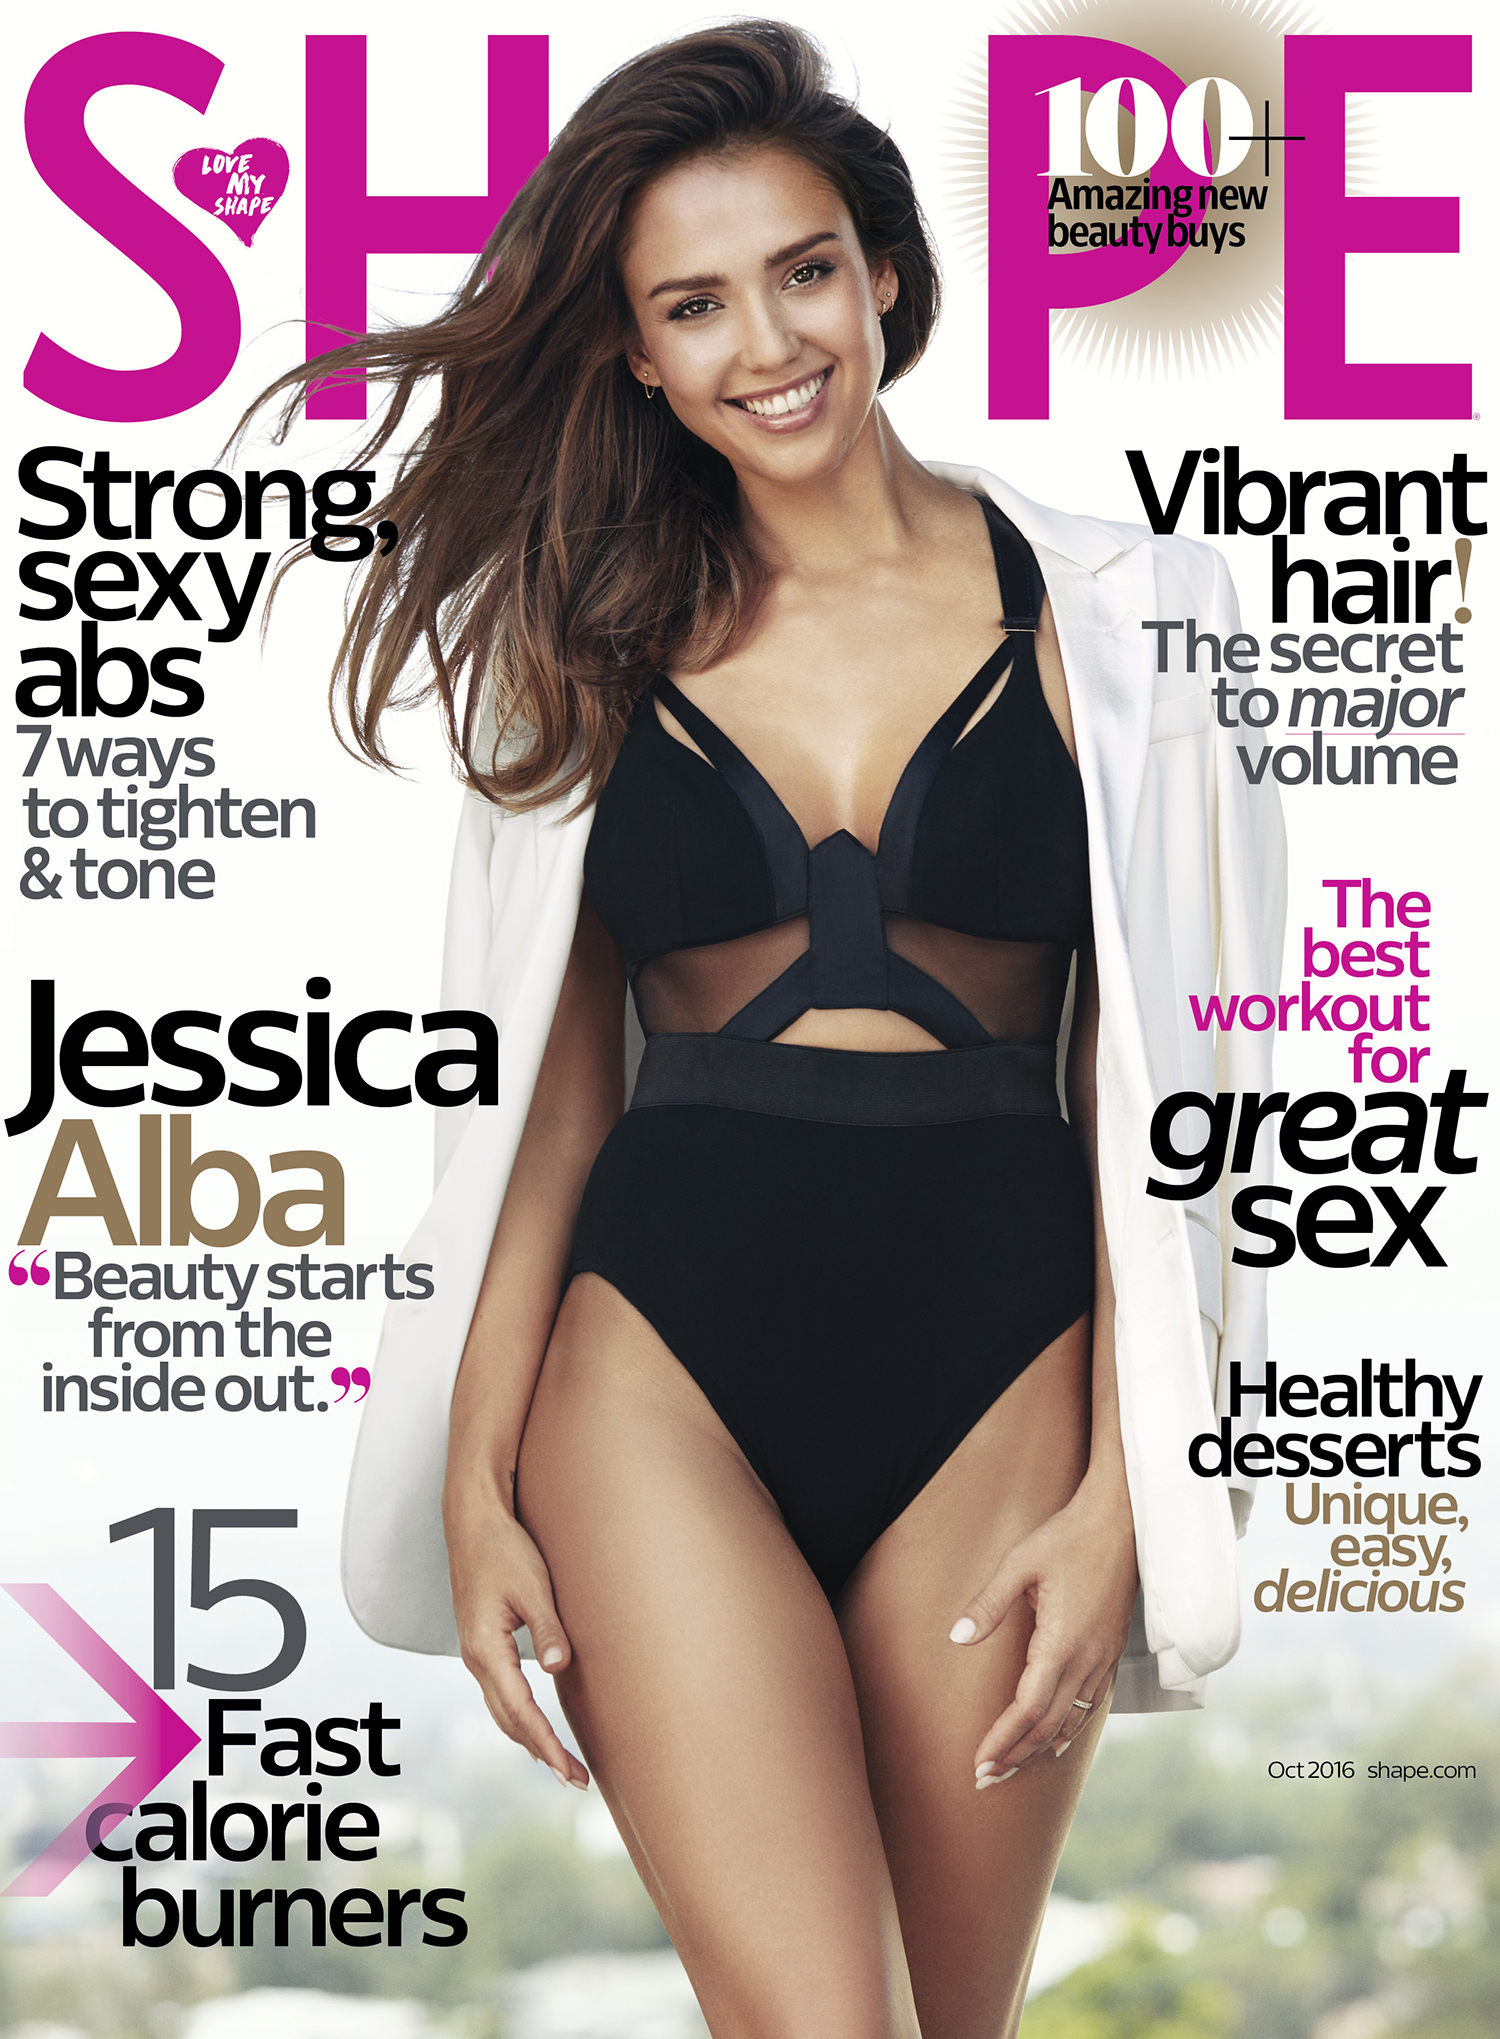 MORE: Jessica Alba Reveals Body Slimming Secrets In New Issue Of Health